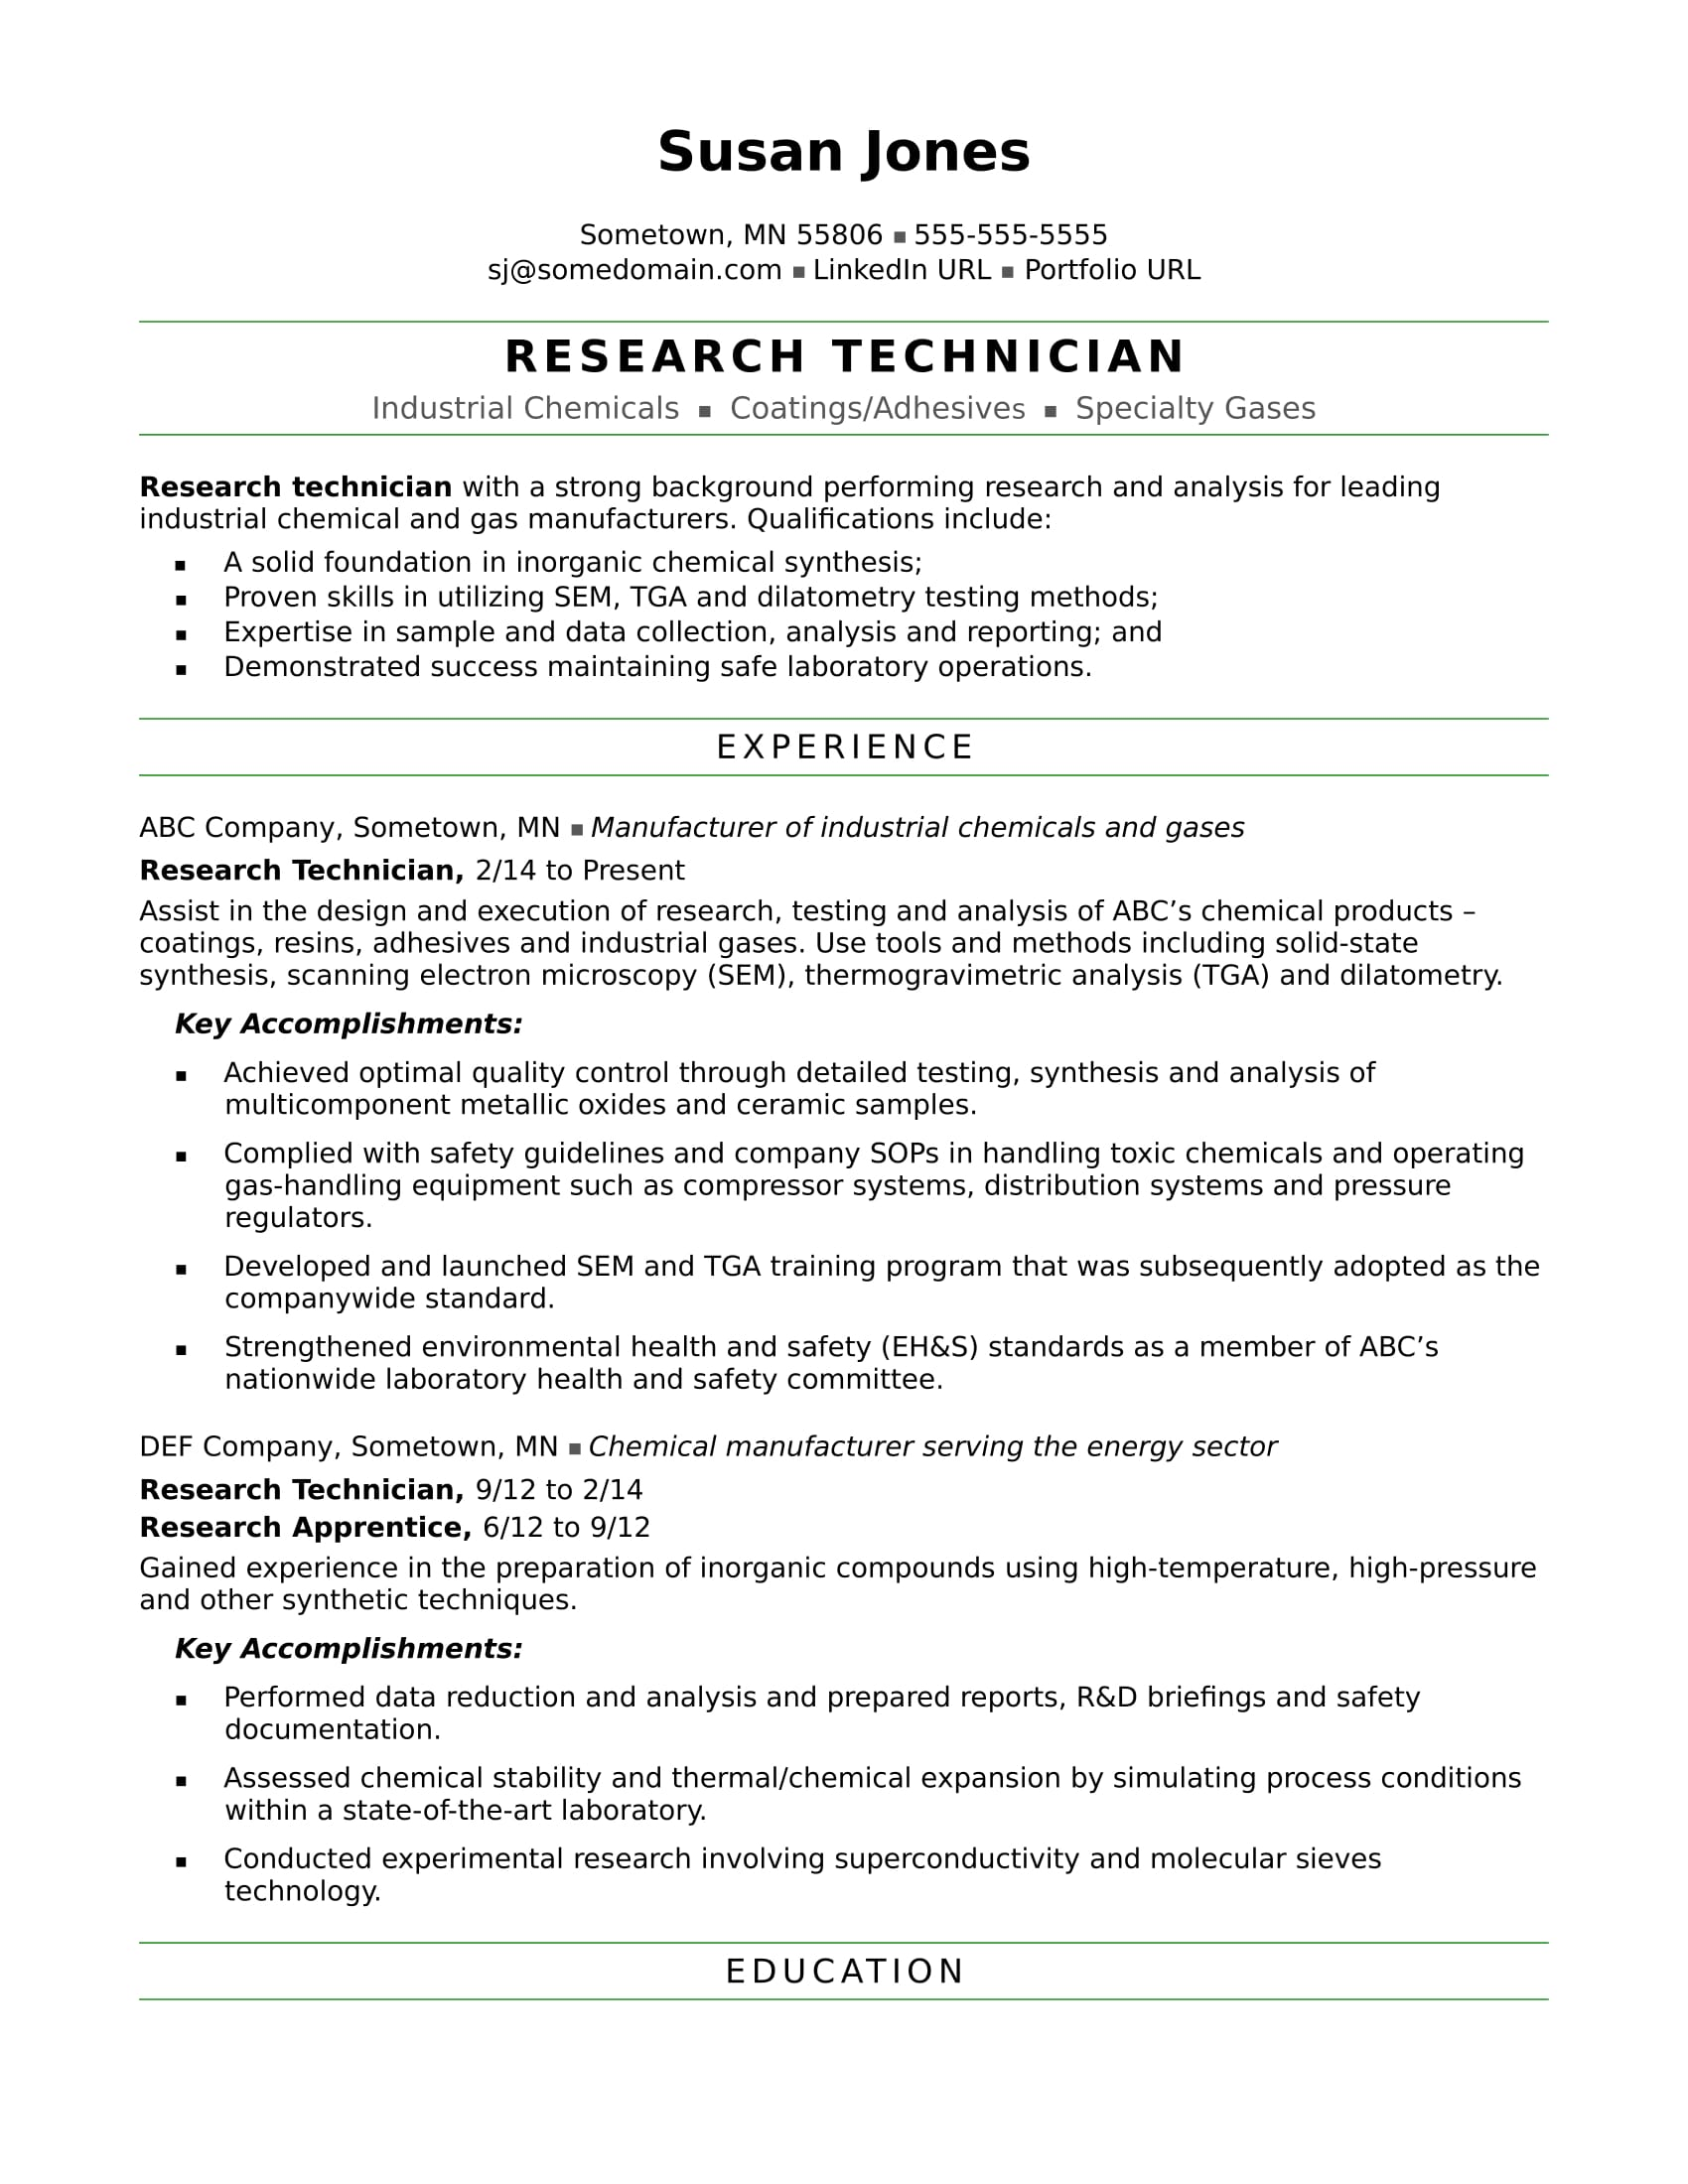 Sample Resume For A Research Technician  Detailed Resume Example